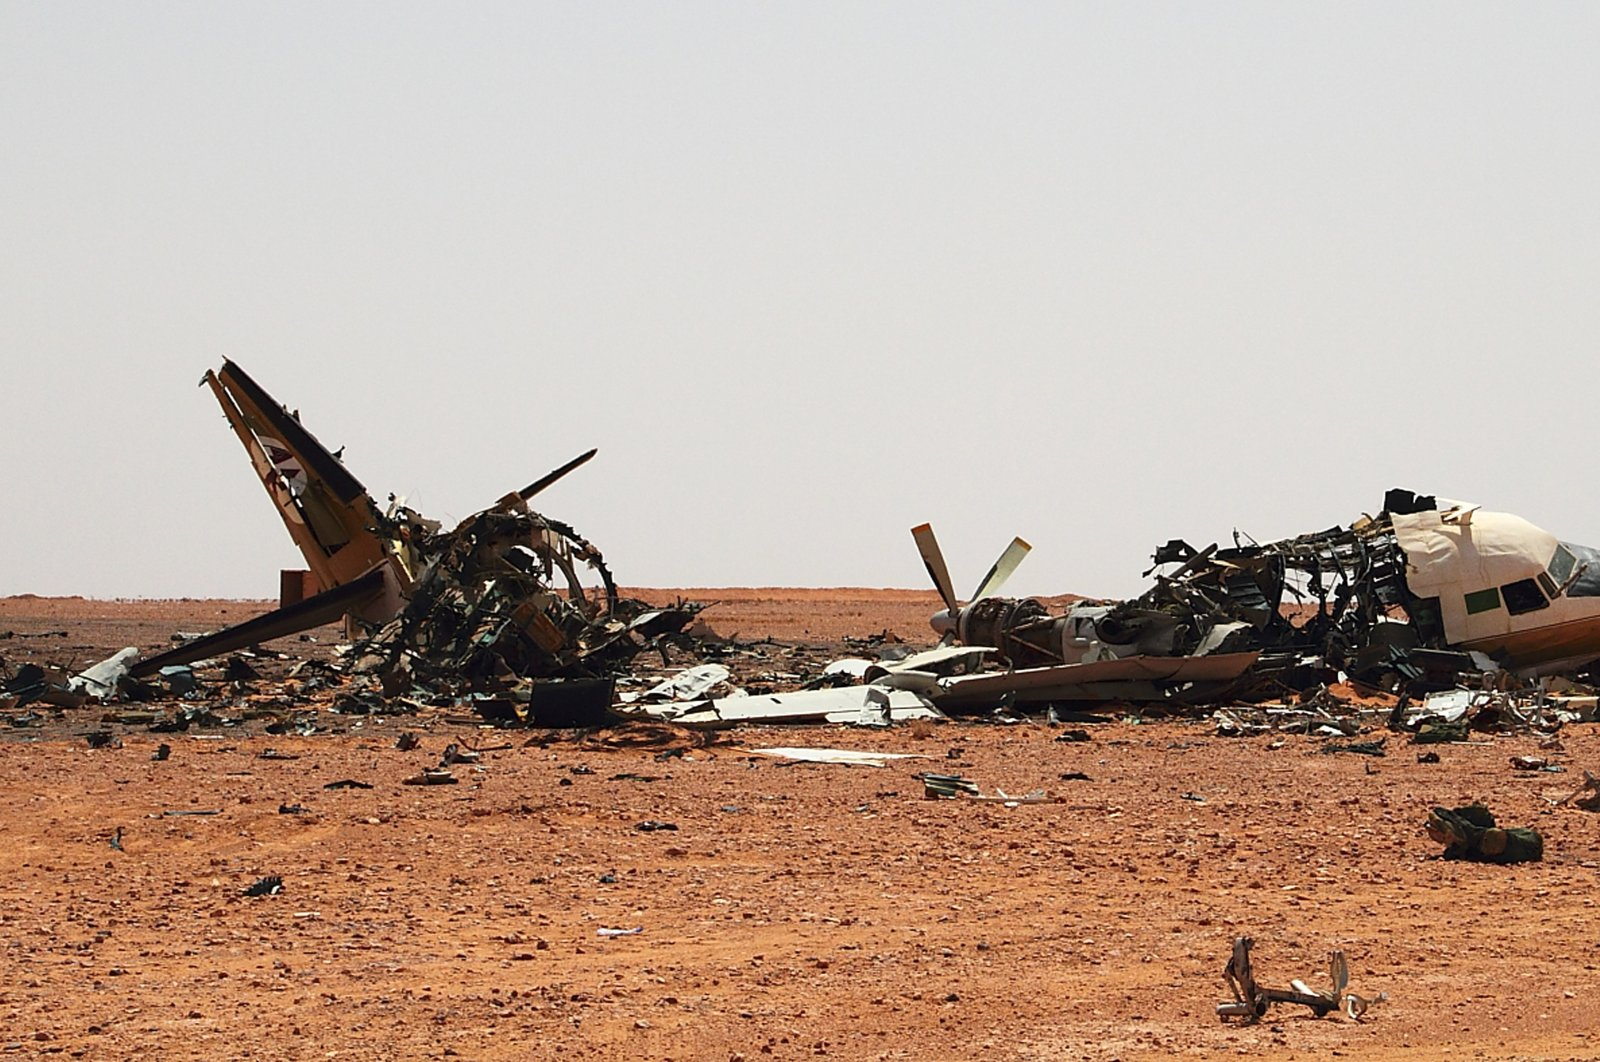 The wreckage of a plane is scattered in the desert outside a military base approximately 45 kilometers outside of Bani Walid, Libya, Saturday, Sept. 3, 2011. (AP File Photo)